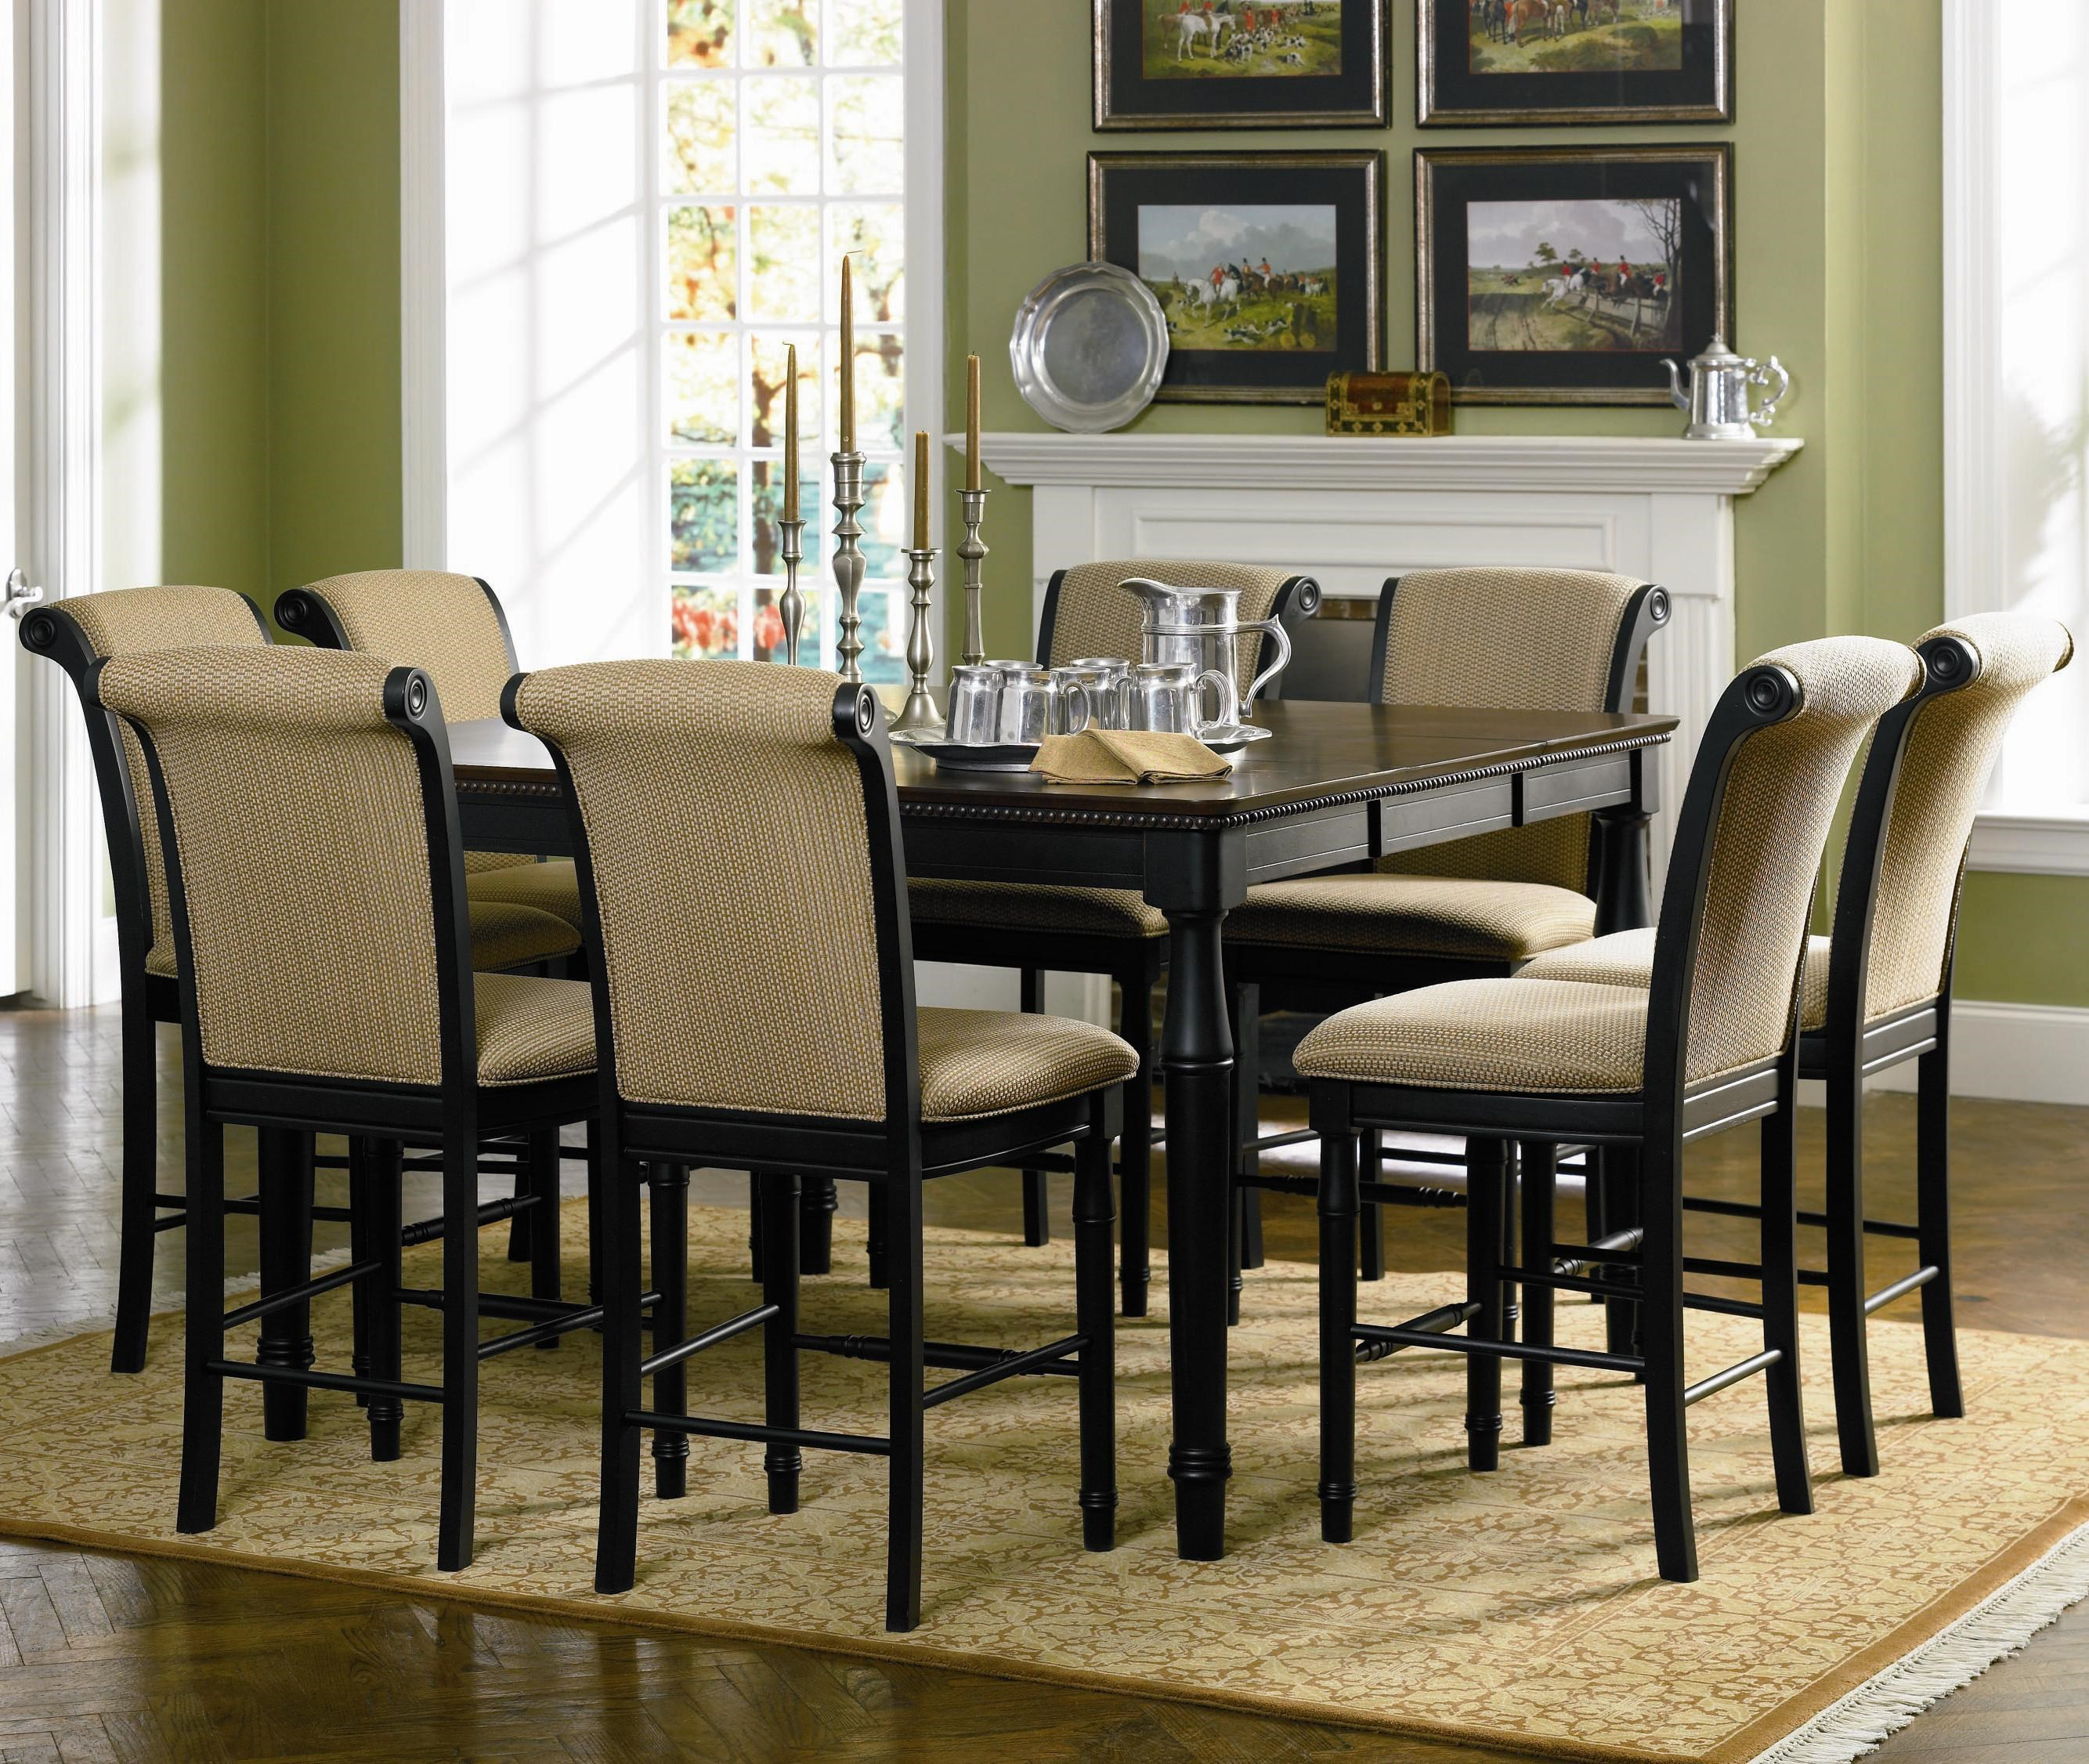 Coaster Cabrillo 9 Piece Counter Height Dining Set   Dunk U0026 Bright Furniture    Pub Table And Stool Sets